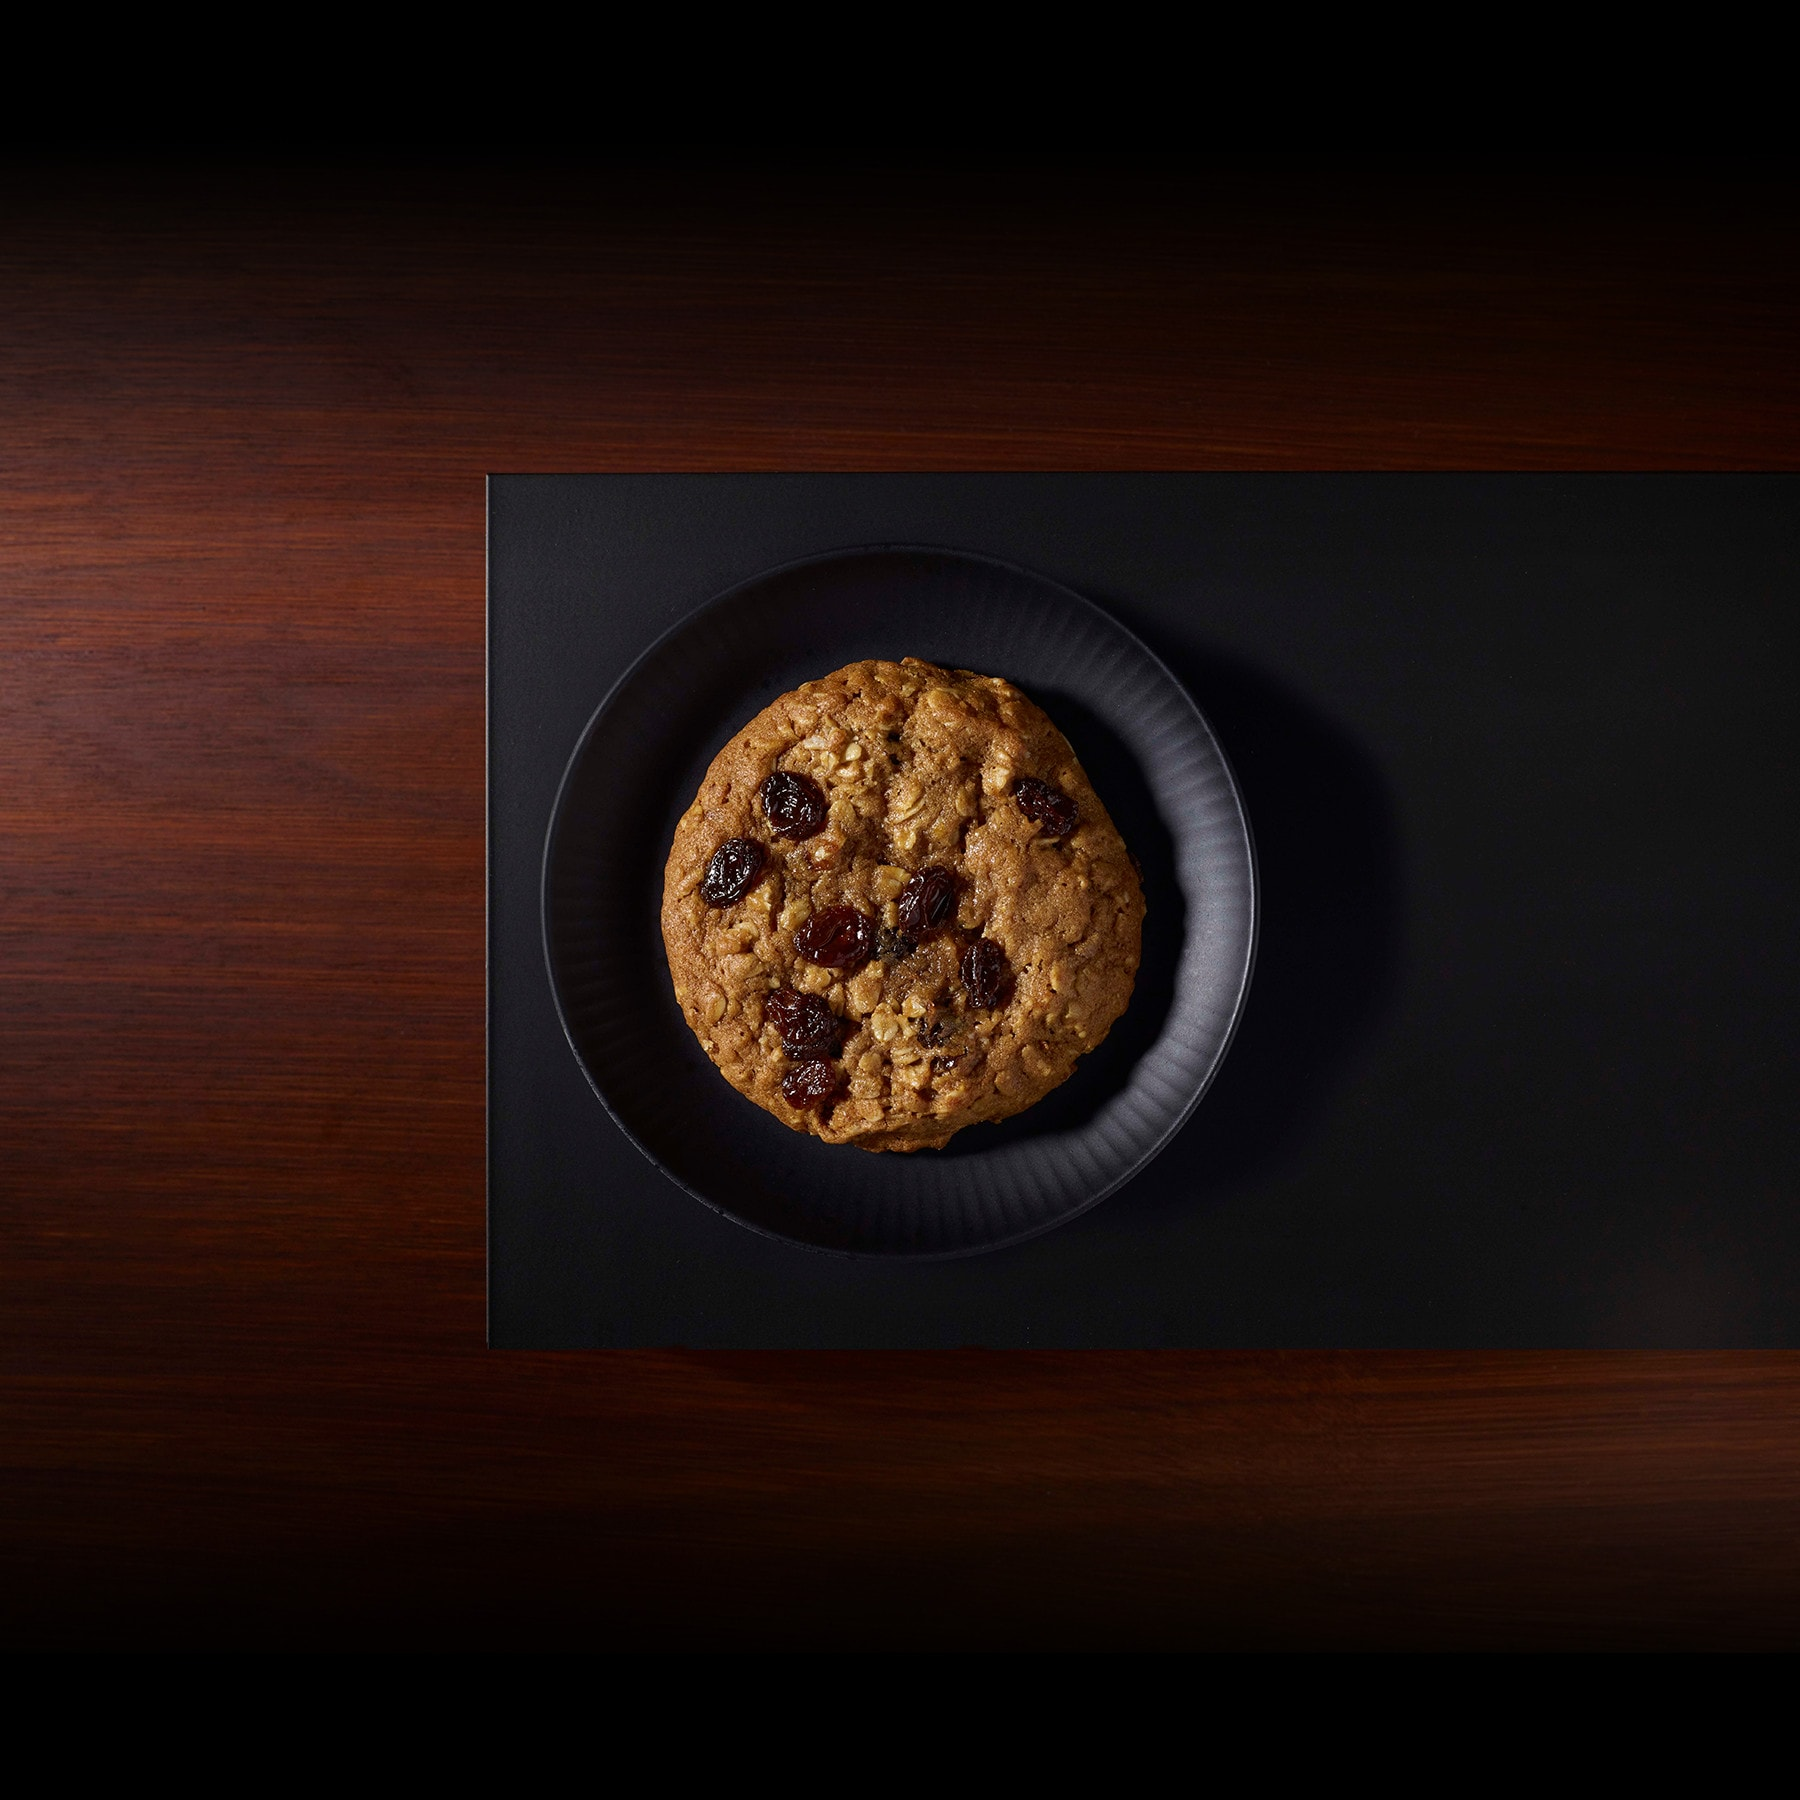 Caramel Macchiato Oatmeal Cookie | Starbucks Coffee Company